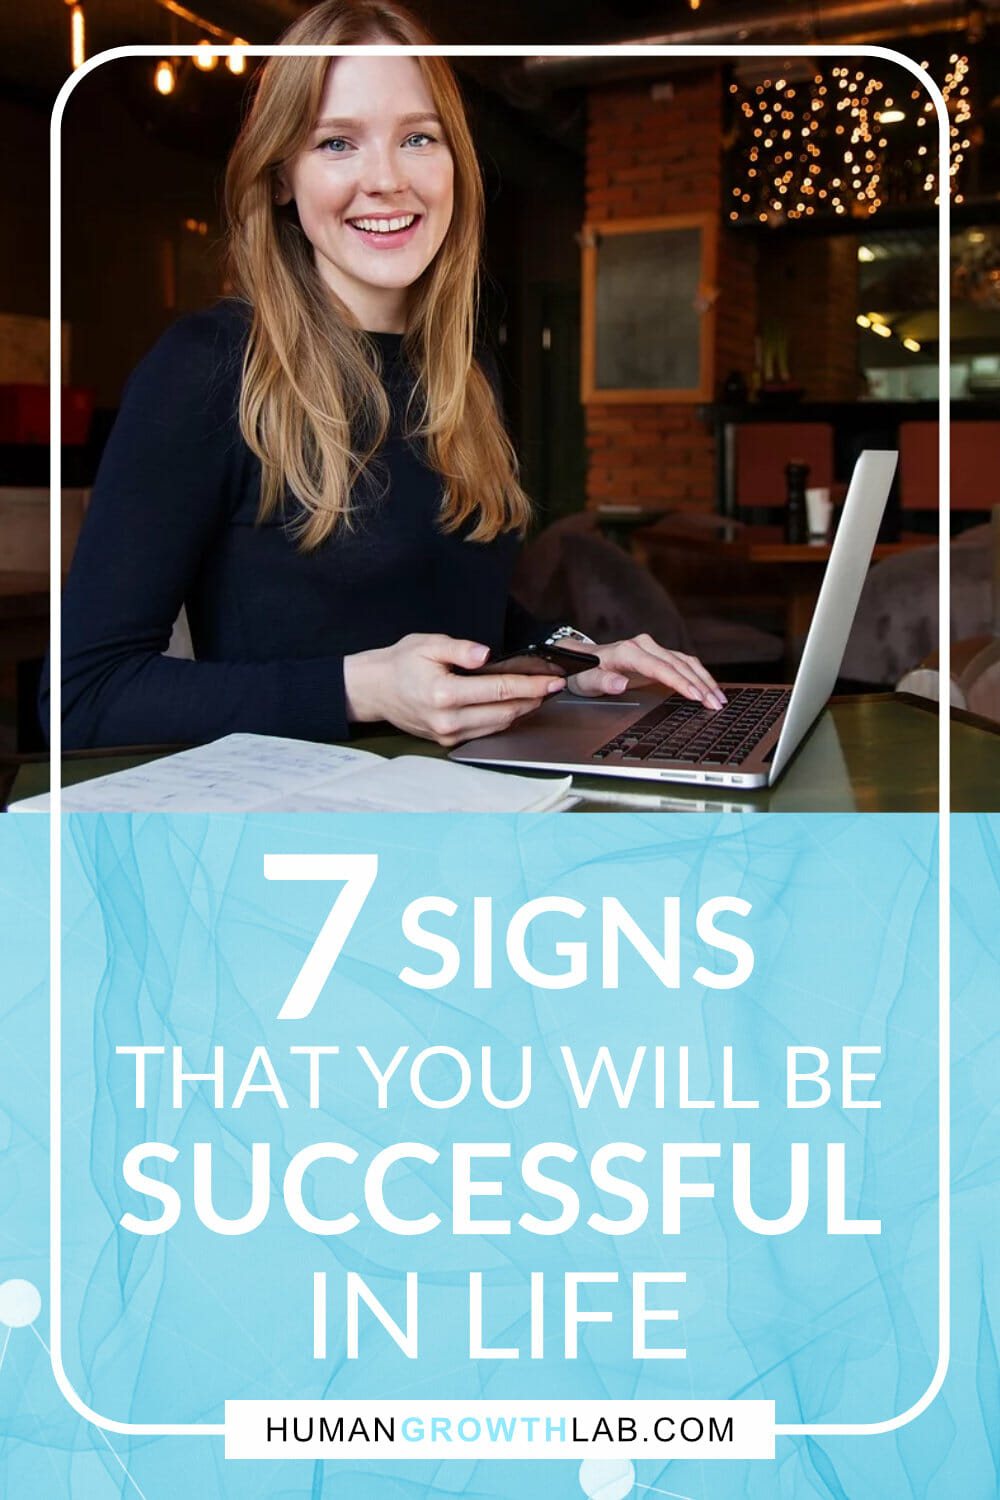 Signs of Success Pinterest image